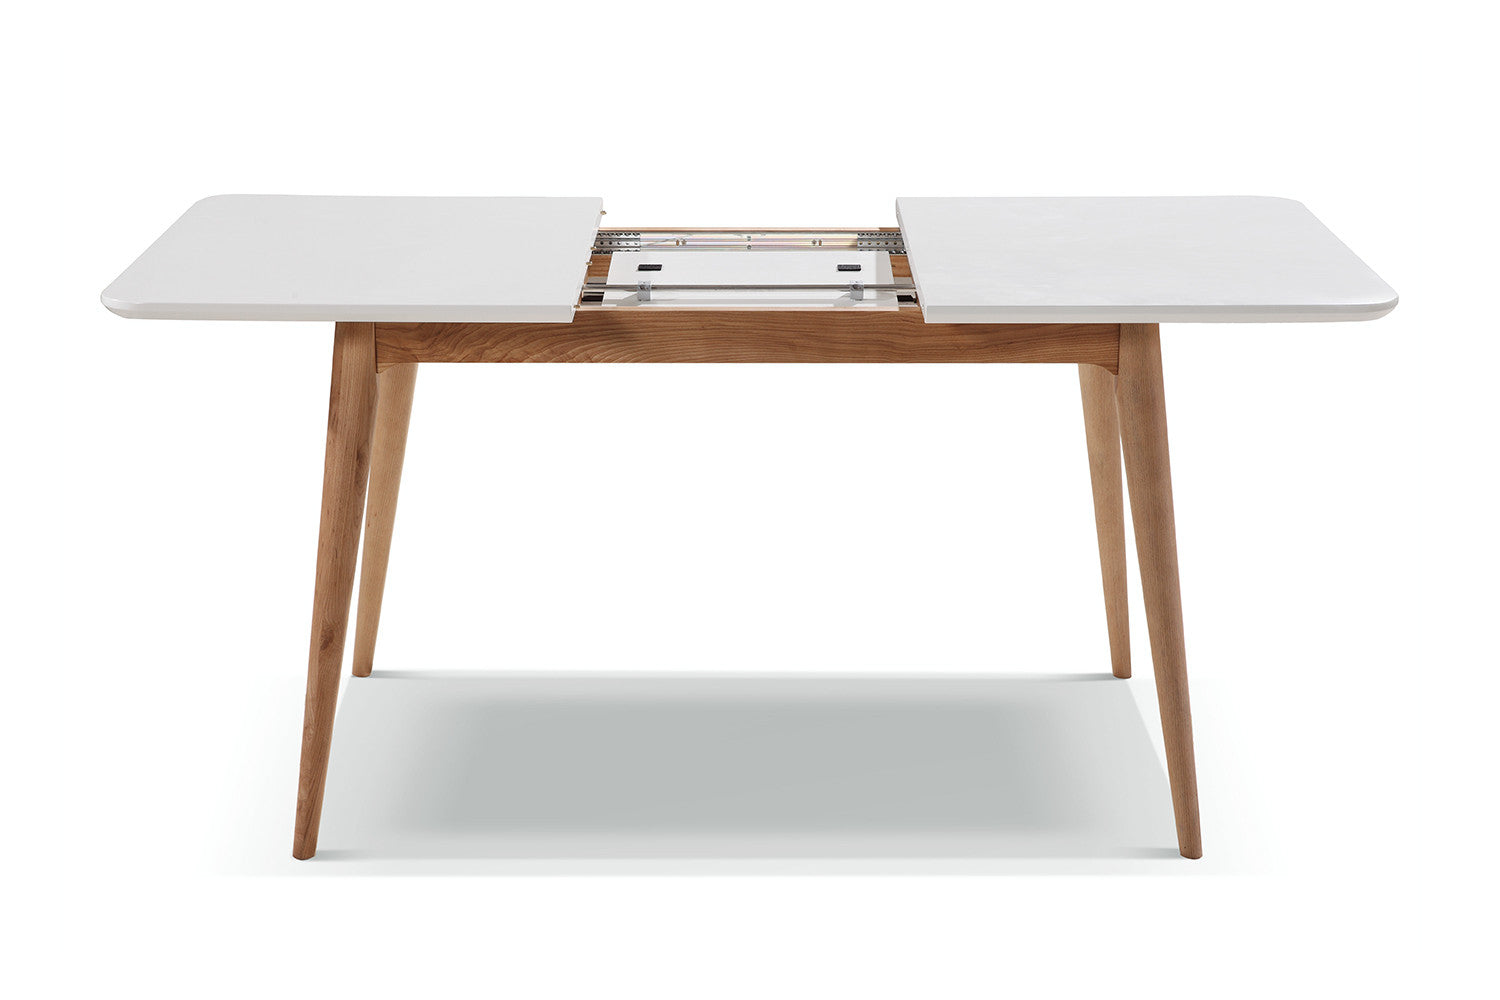 Table de cuisine extensible vintage breggia dewarens for Table a manger rallonge papillon